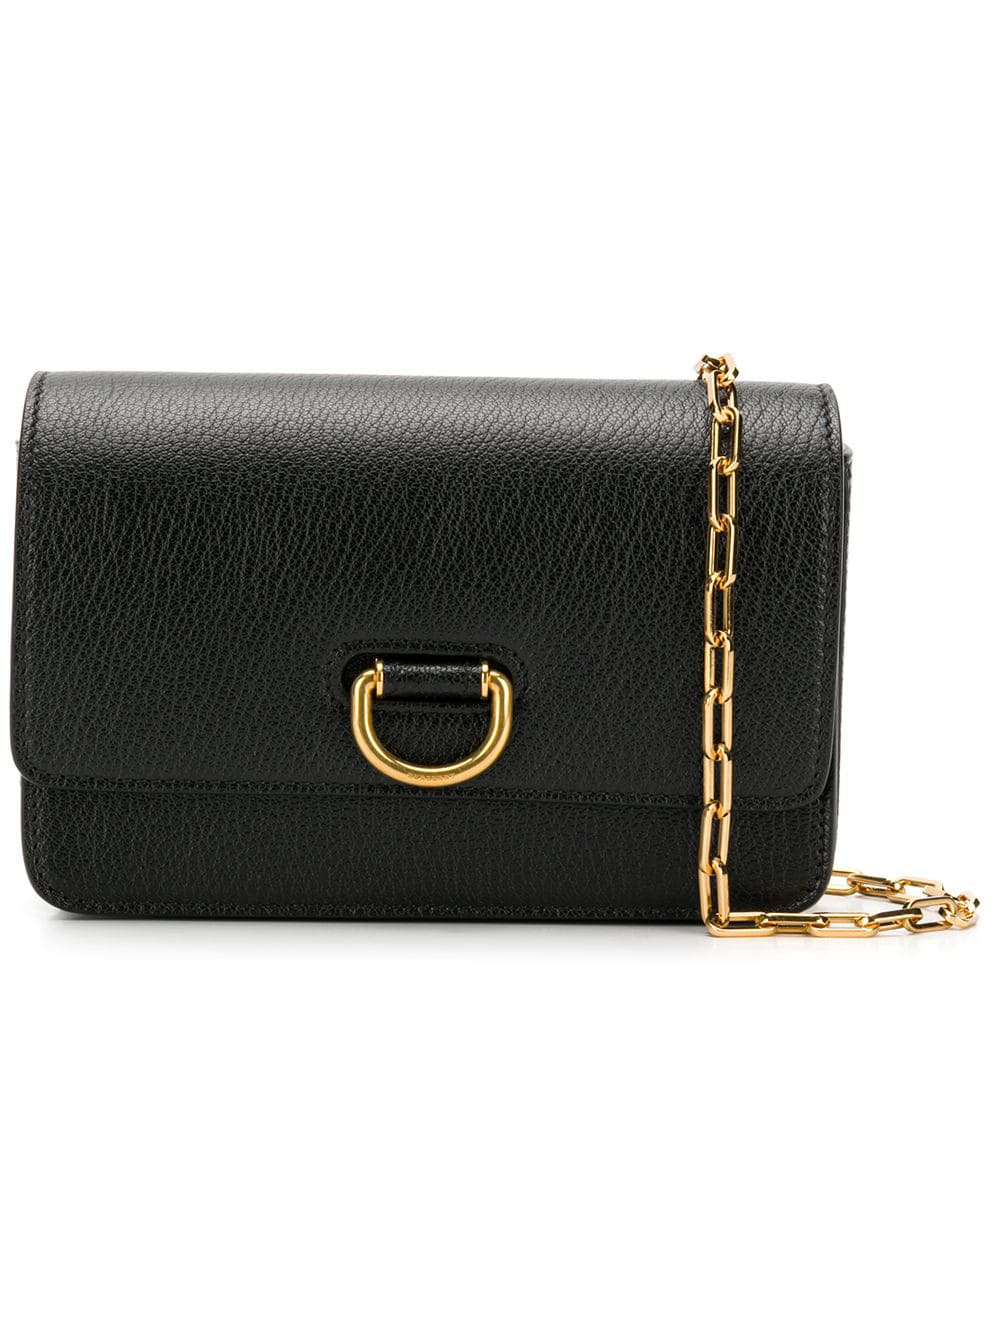 Burberry The Mini Leather D-ring Bag In Black